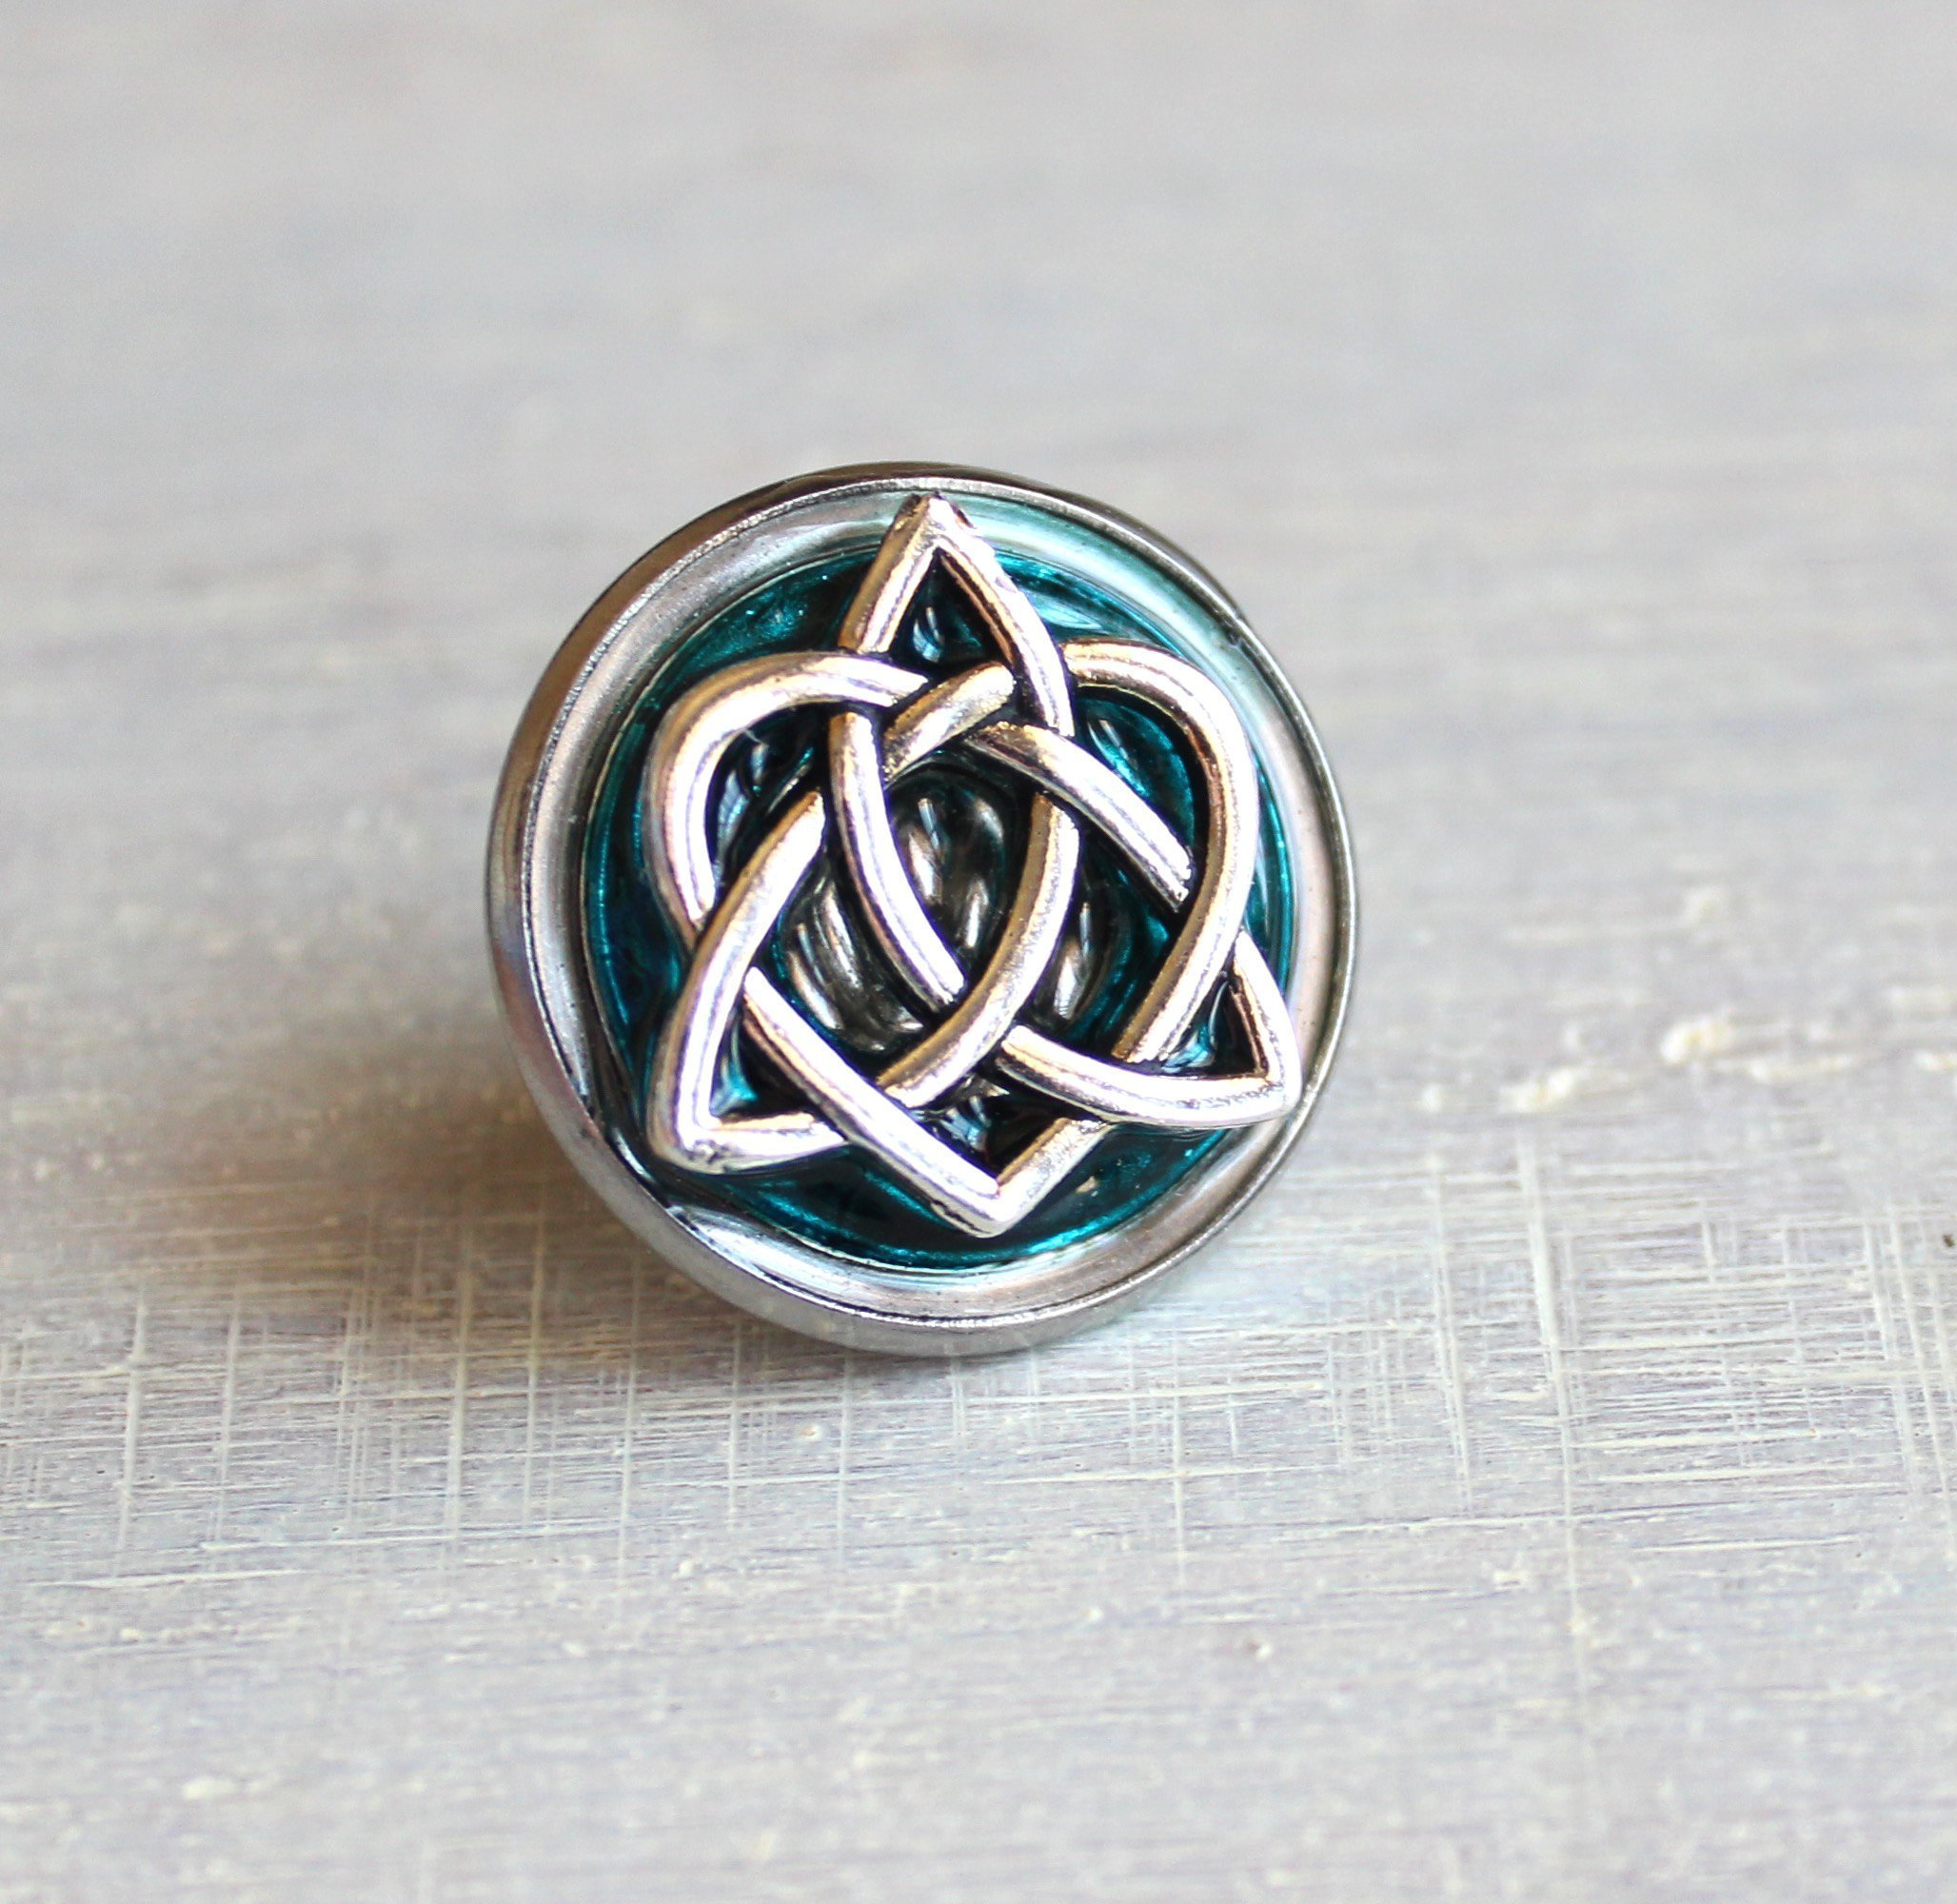 Blue celtic knot tie tack / lapel pin. by Nature With You